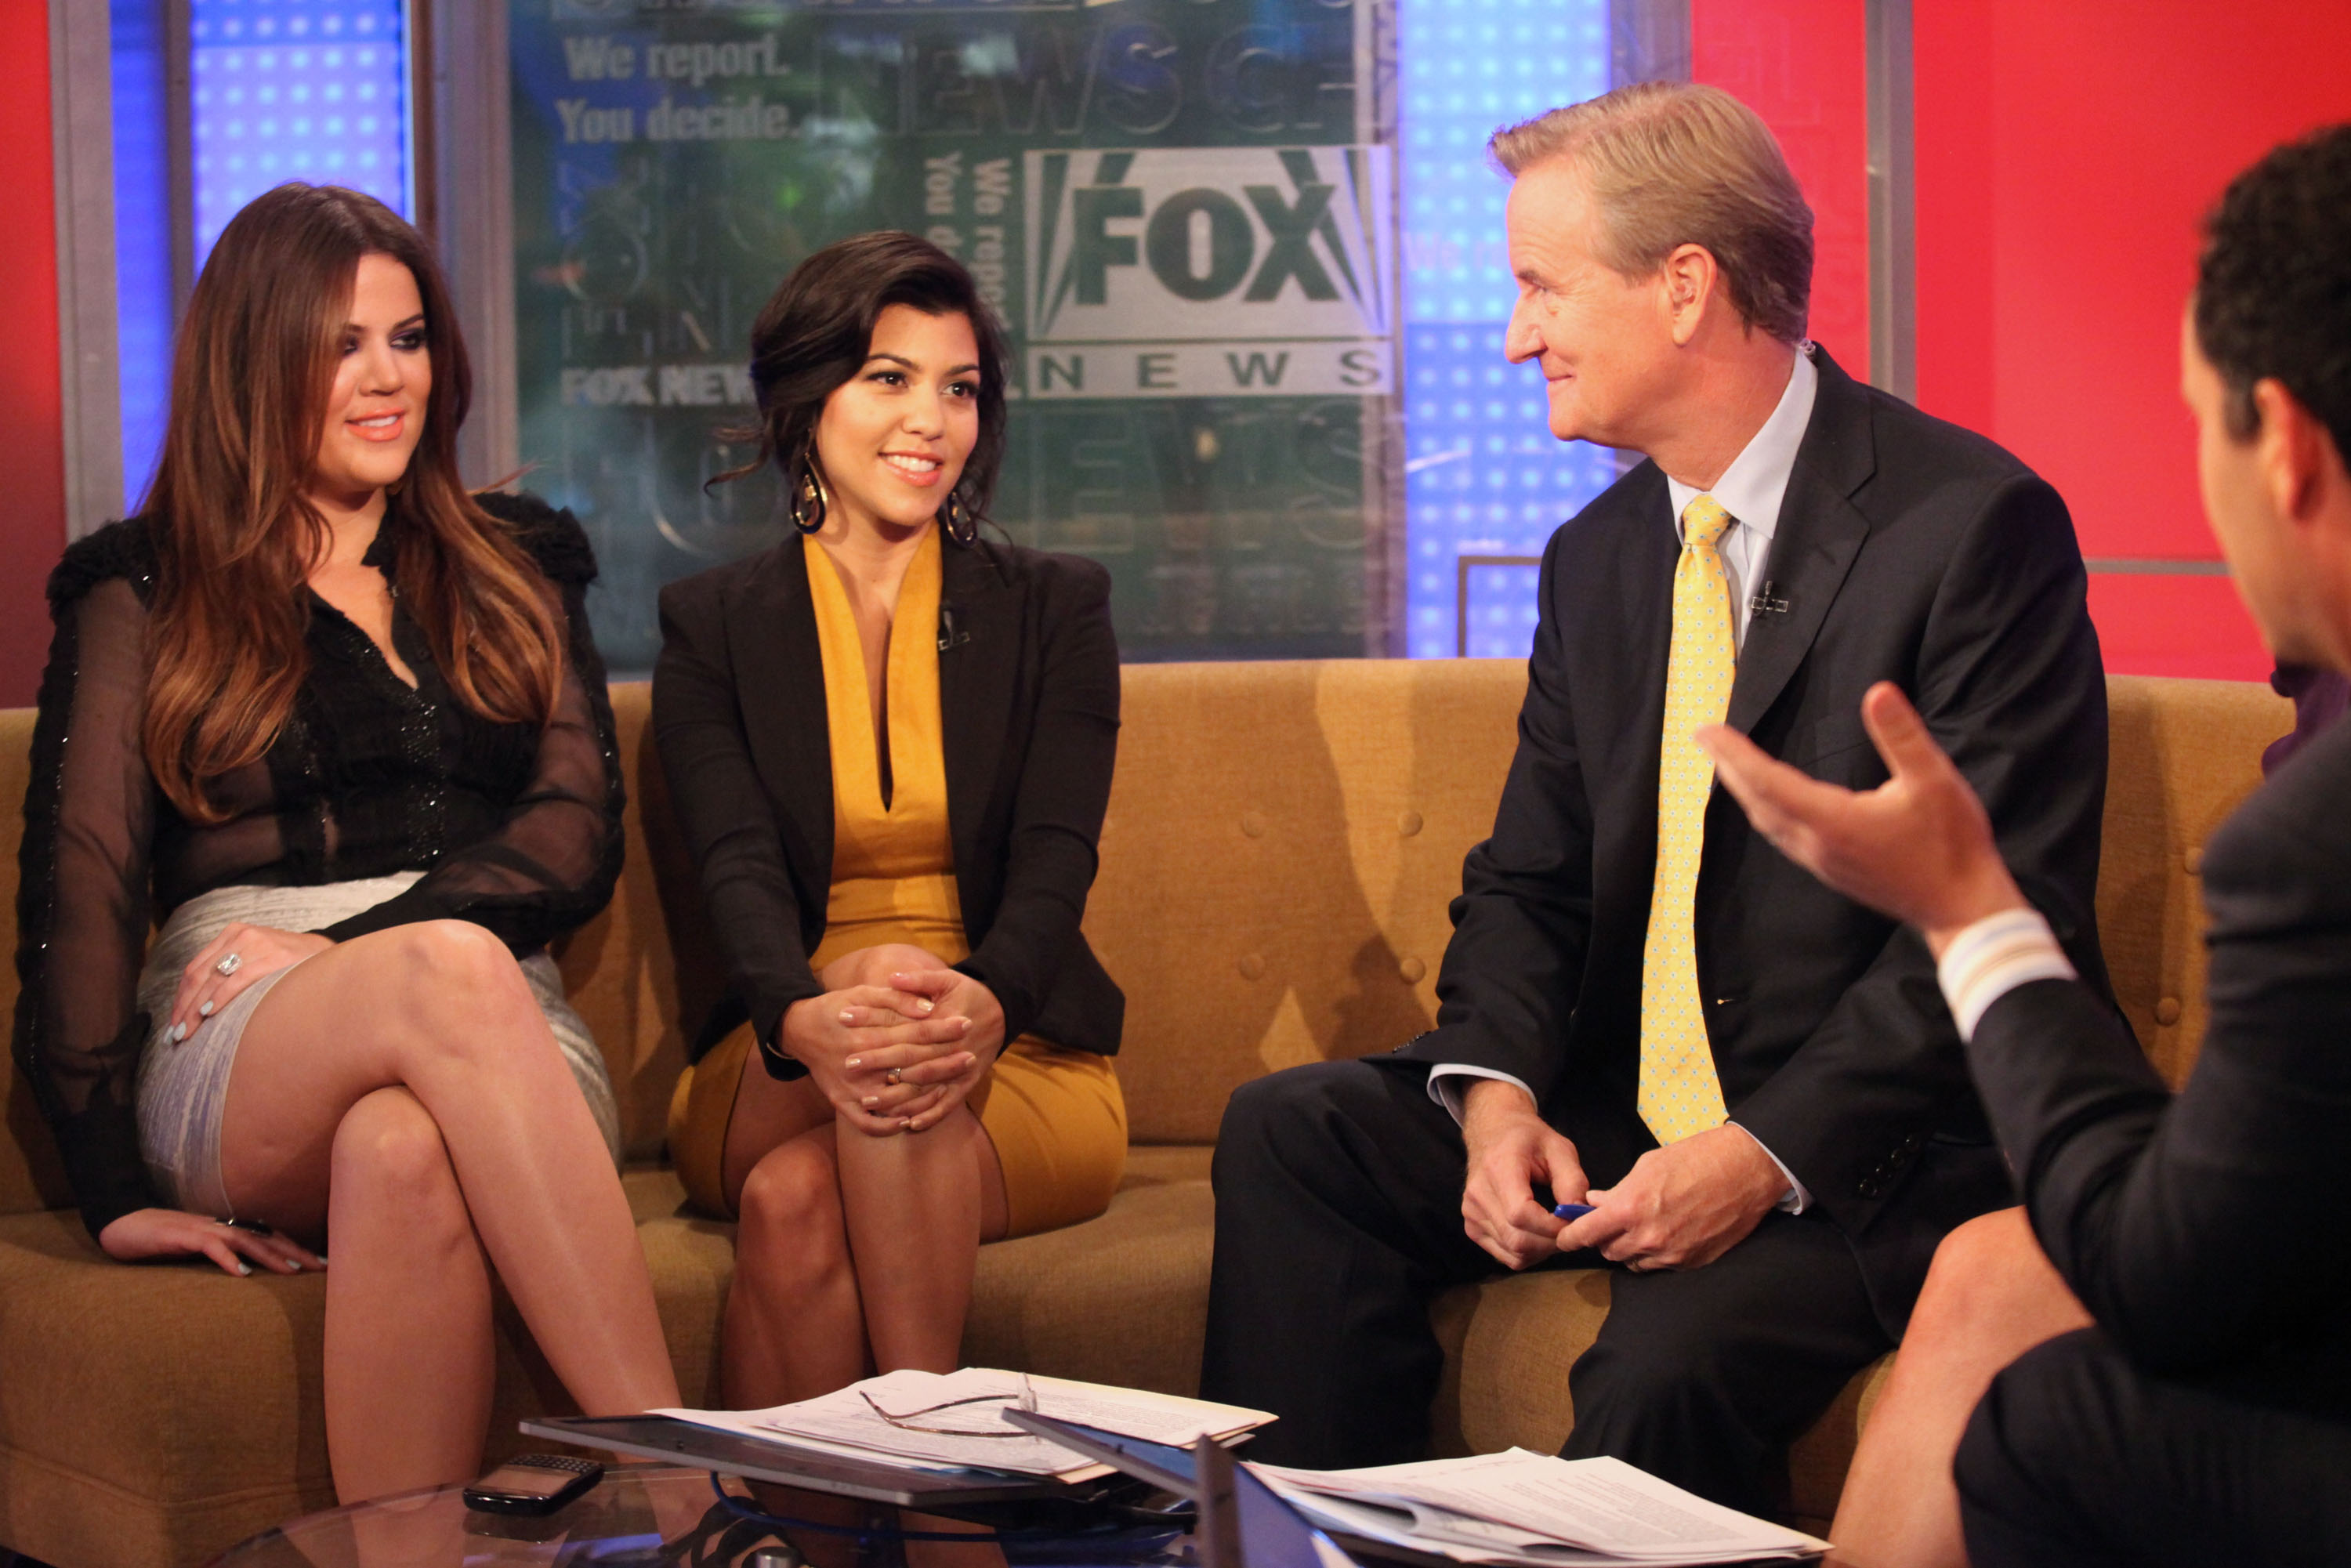 Fox news women wardrobe oops about still